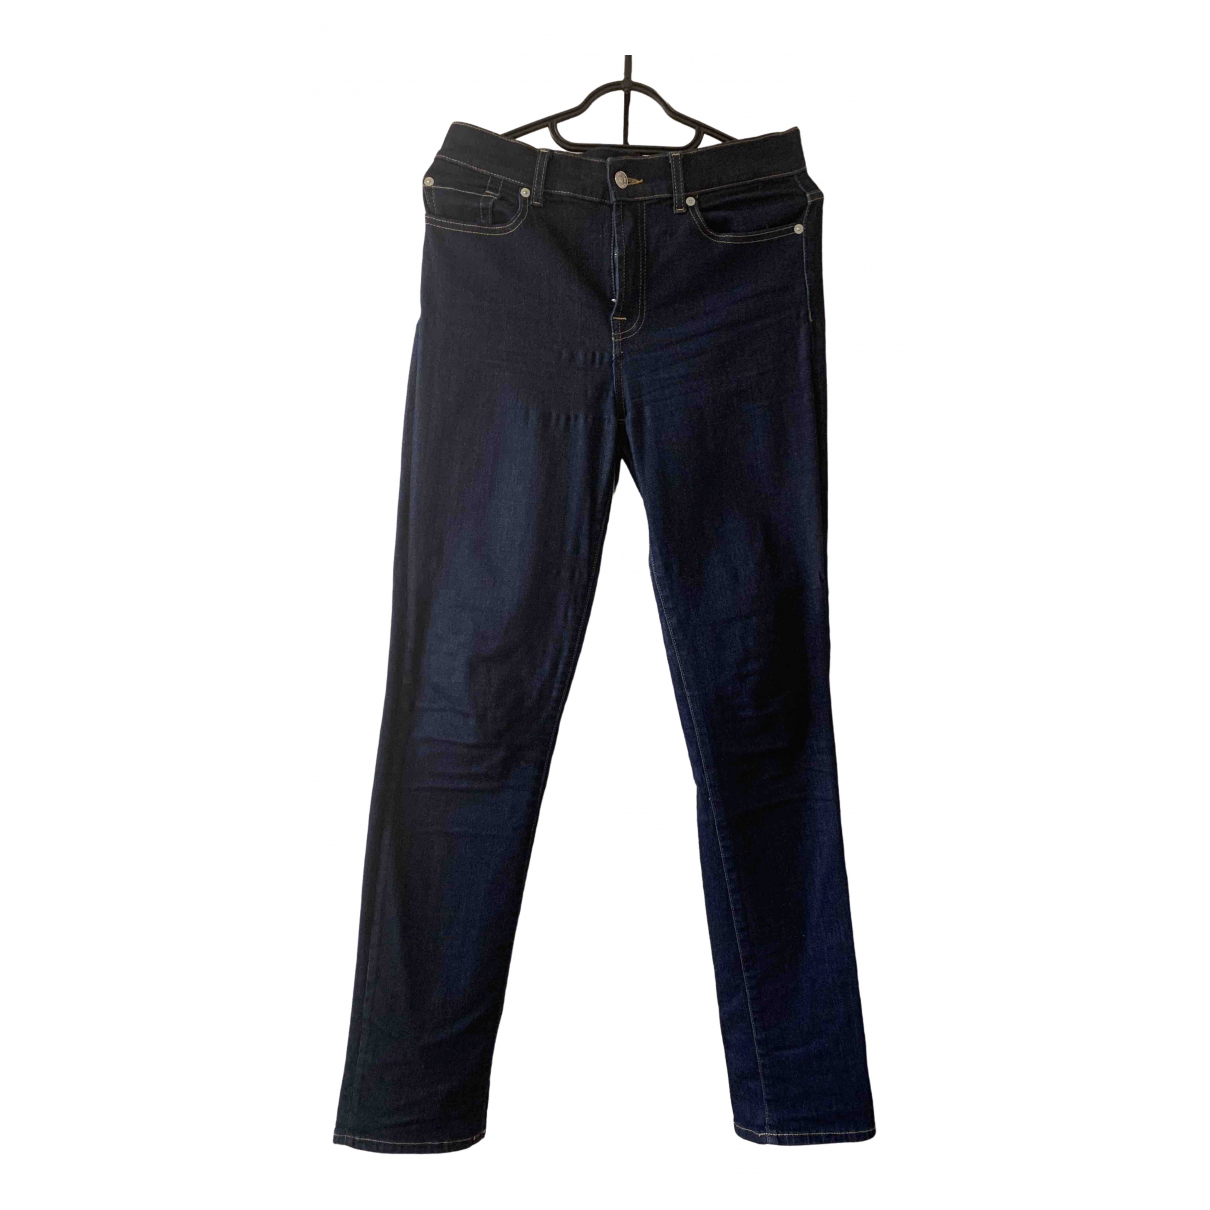 7 For All Mankind \N Navy Denim - Jeans Jeans for Women 29 US